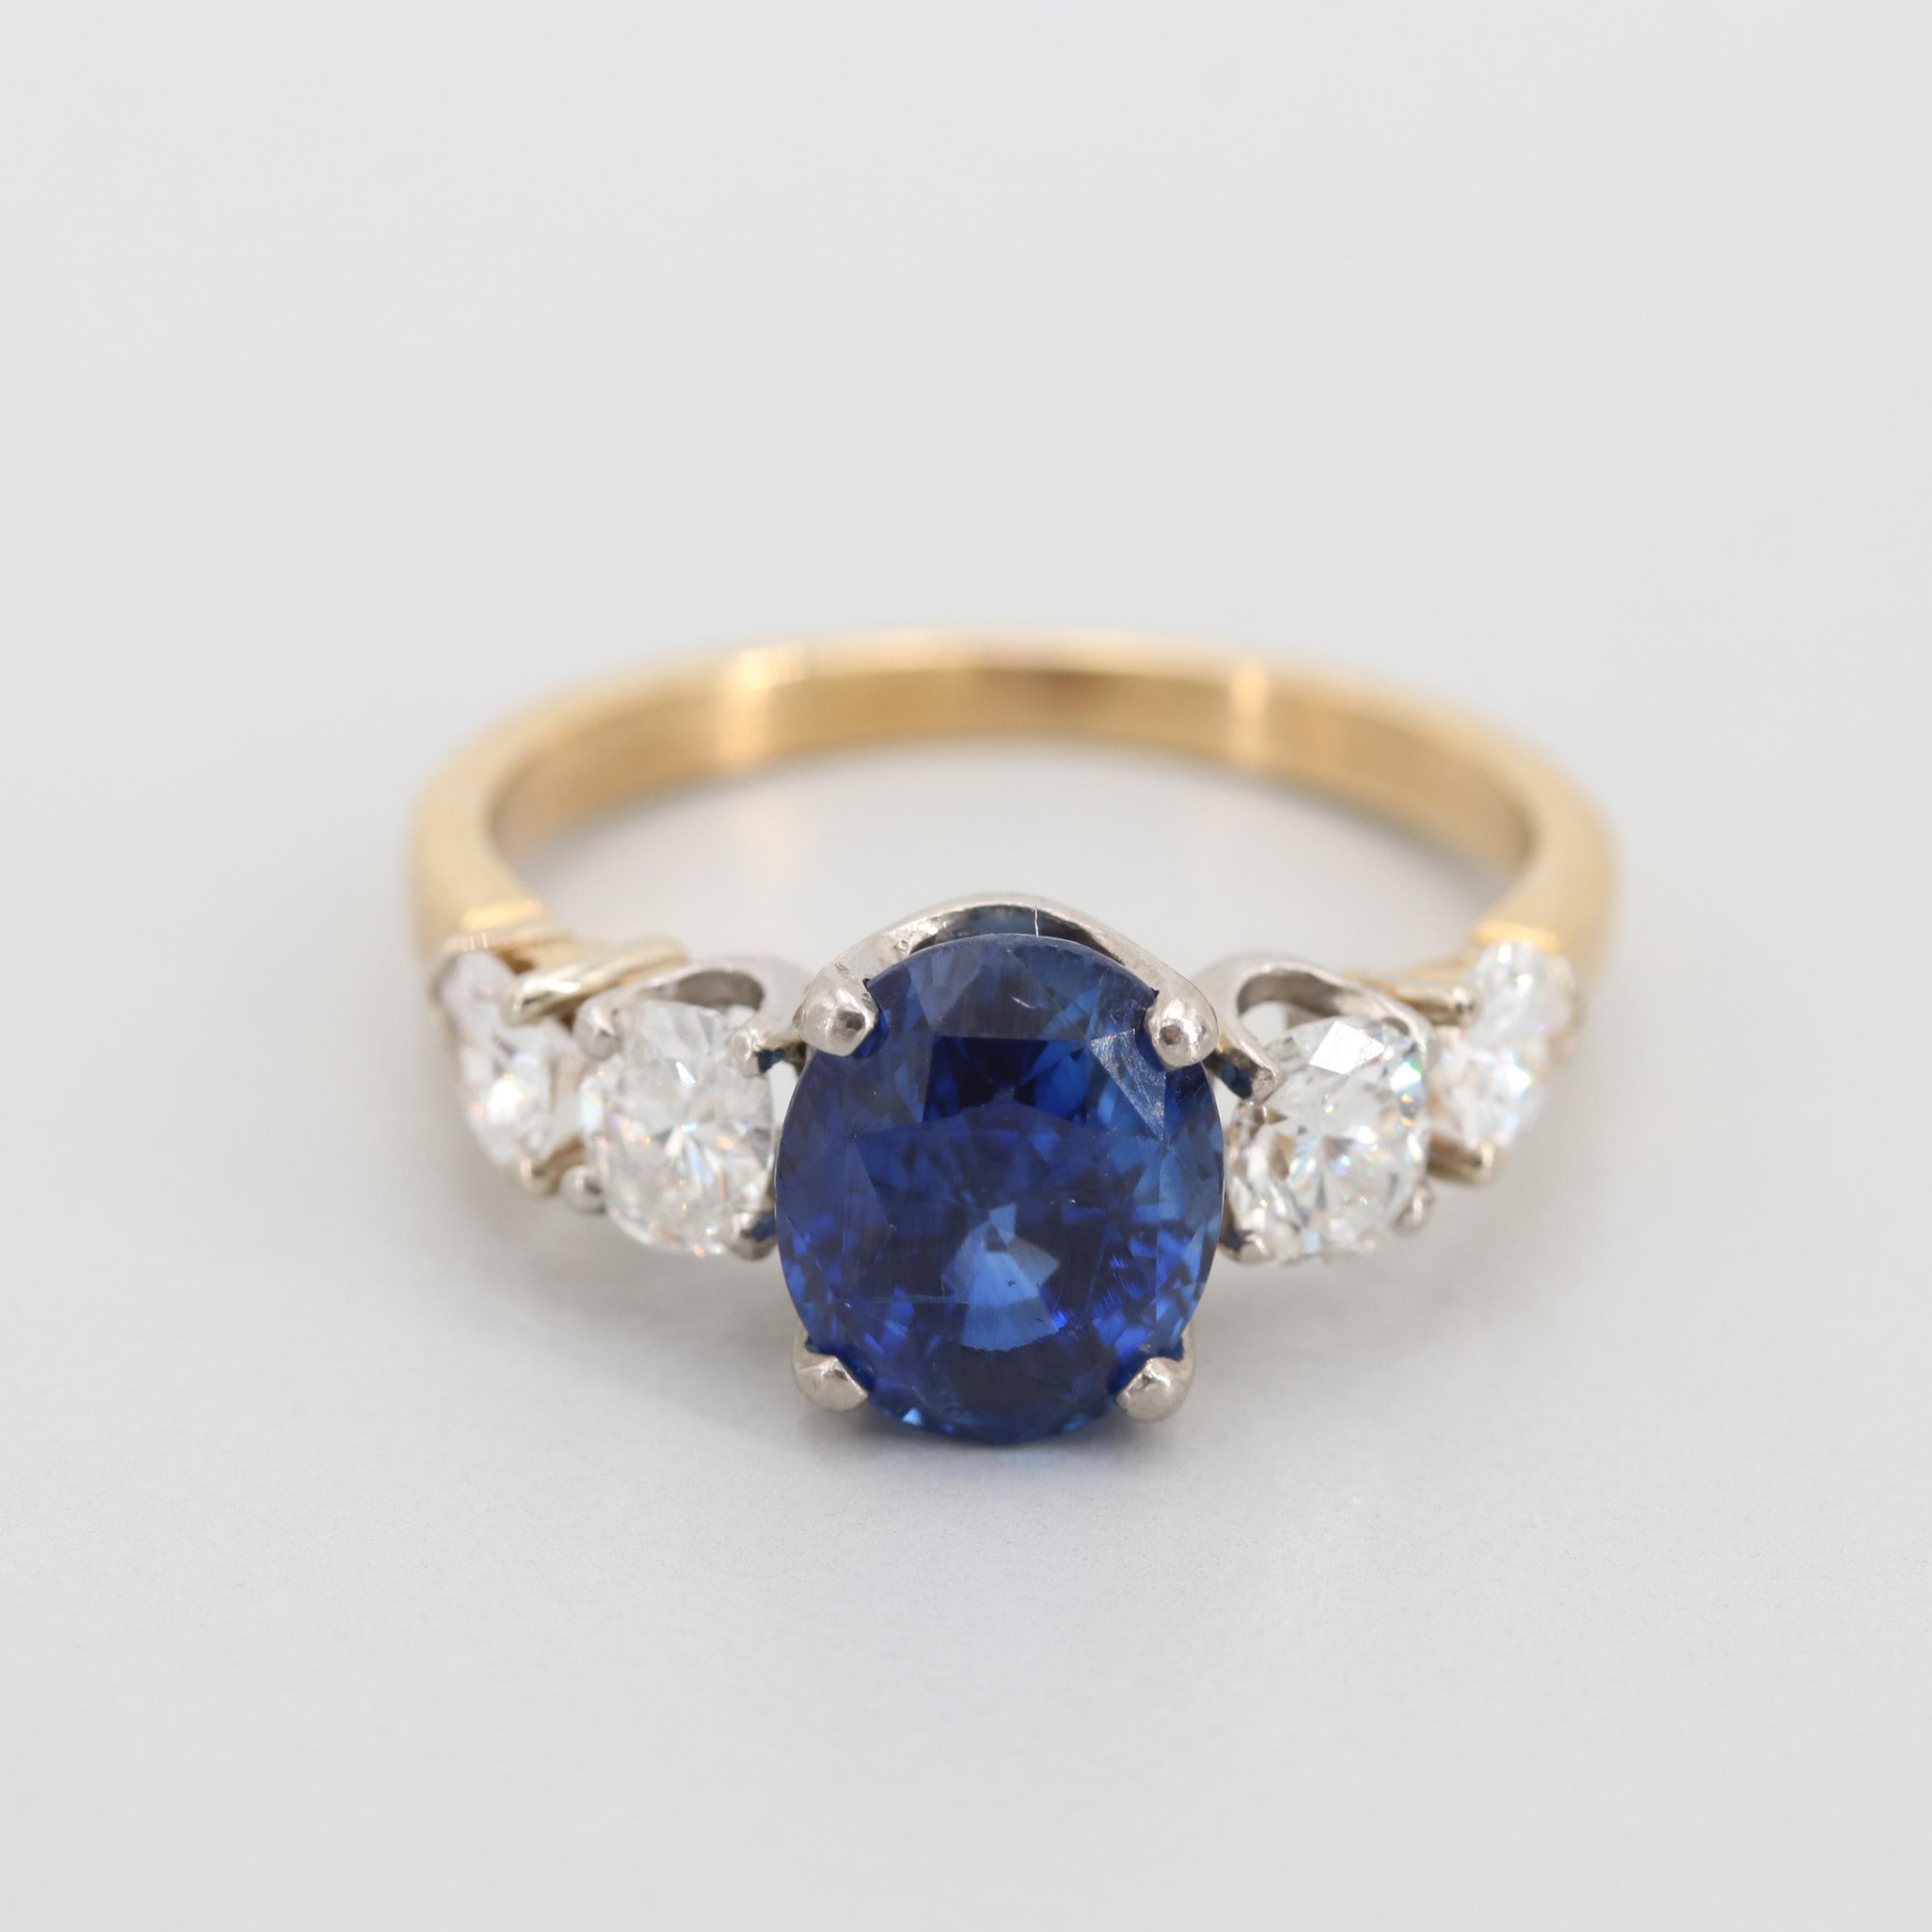 14K Yellow Gold 3.07 CT Blue Sapphire and Diamond Ring with Palladium Accent